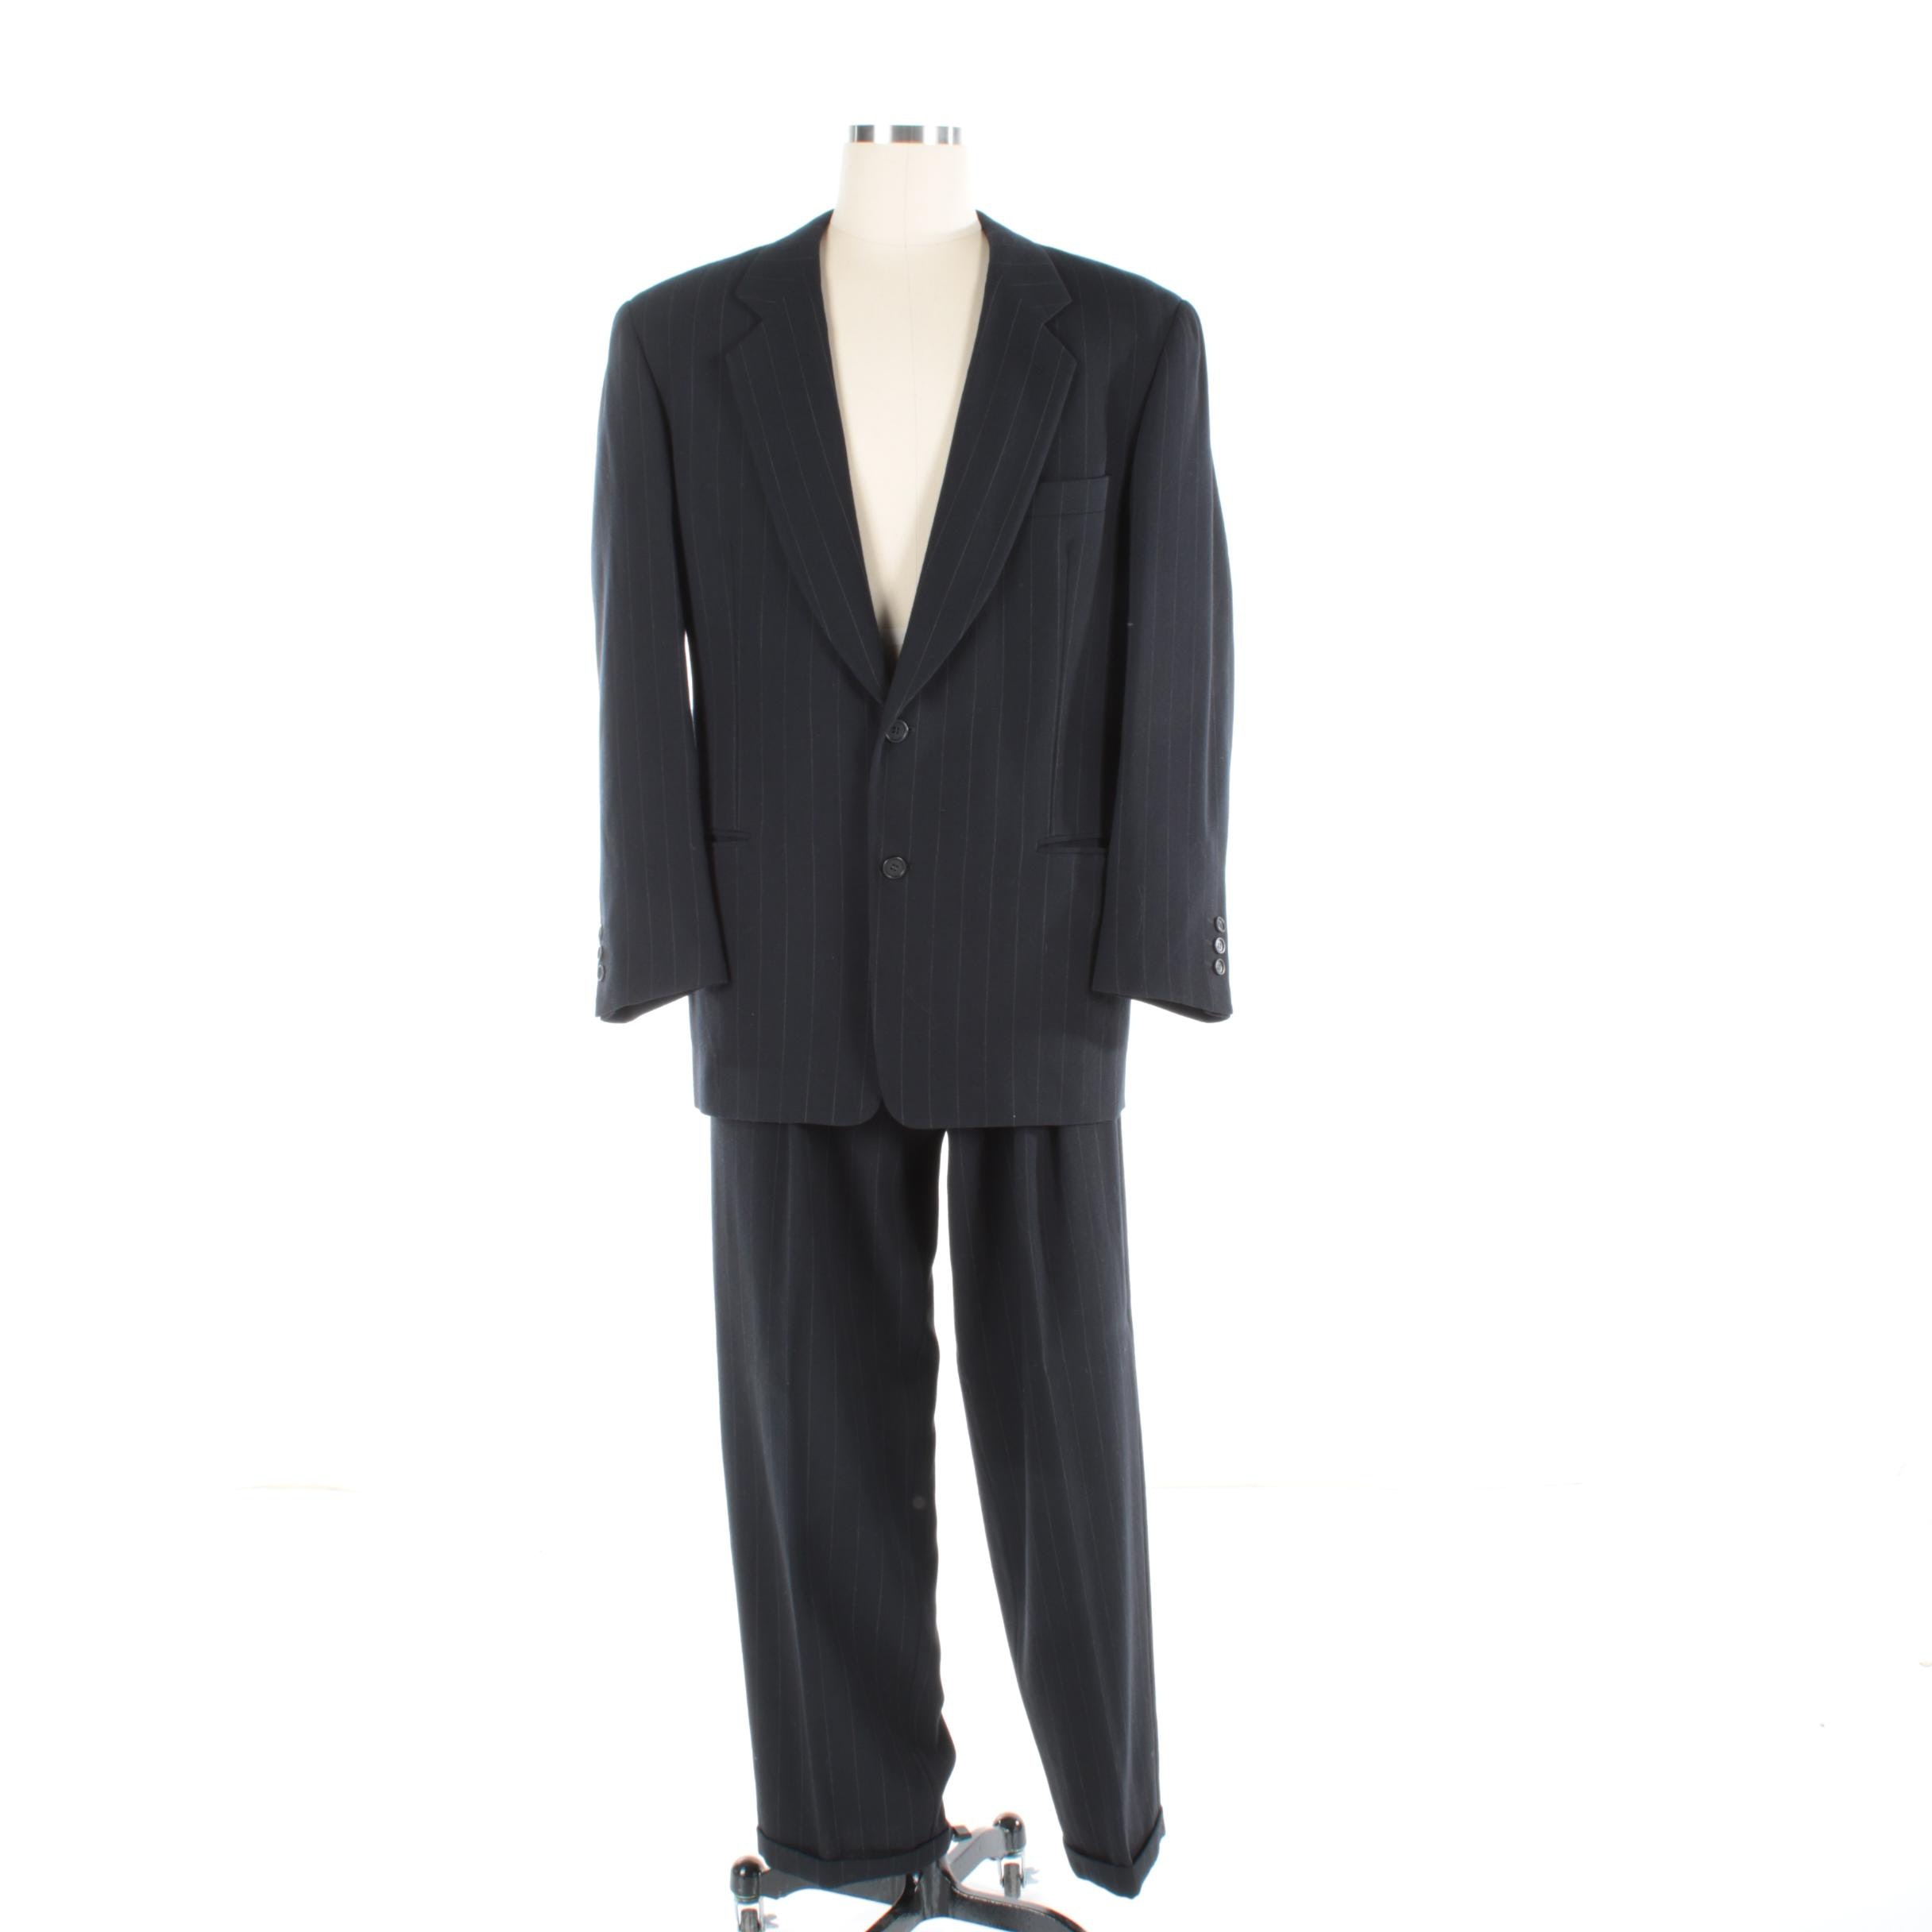 Men's Giorgio Armani Wool Blend Pinstripe Suit